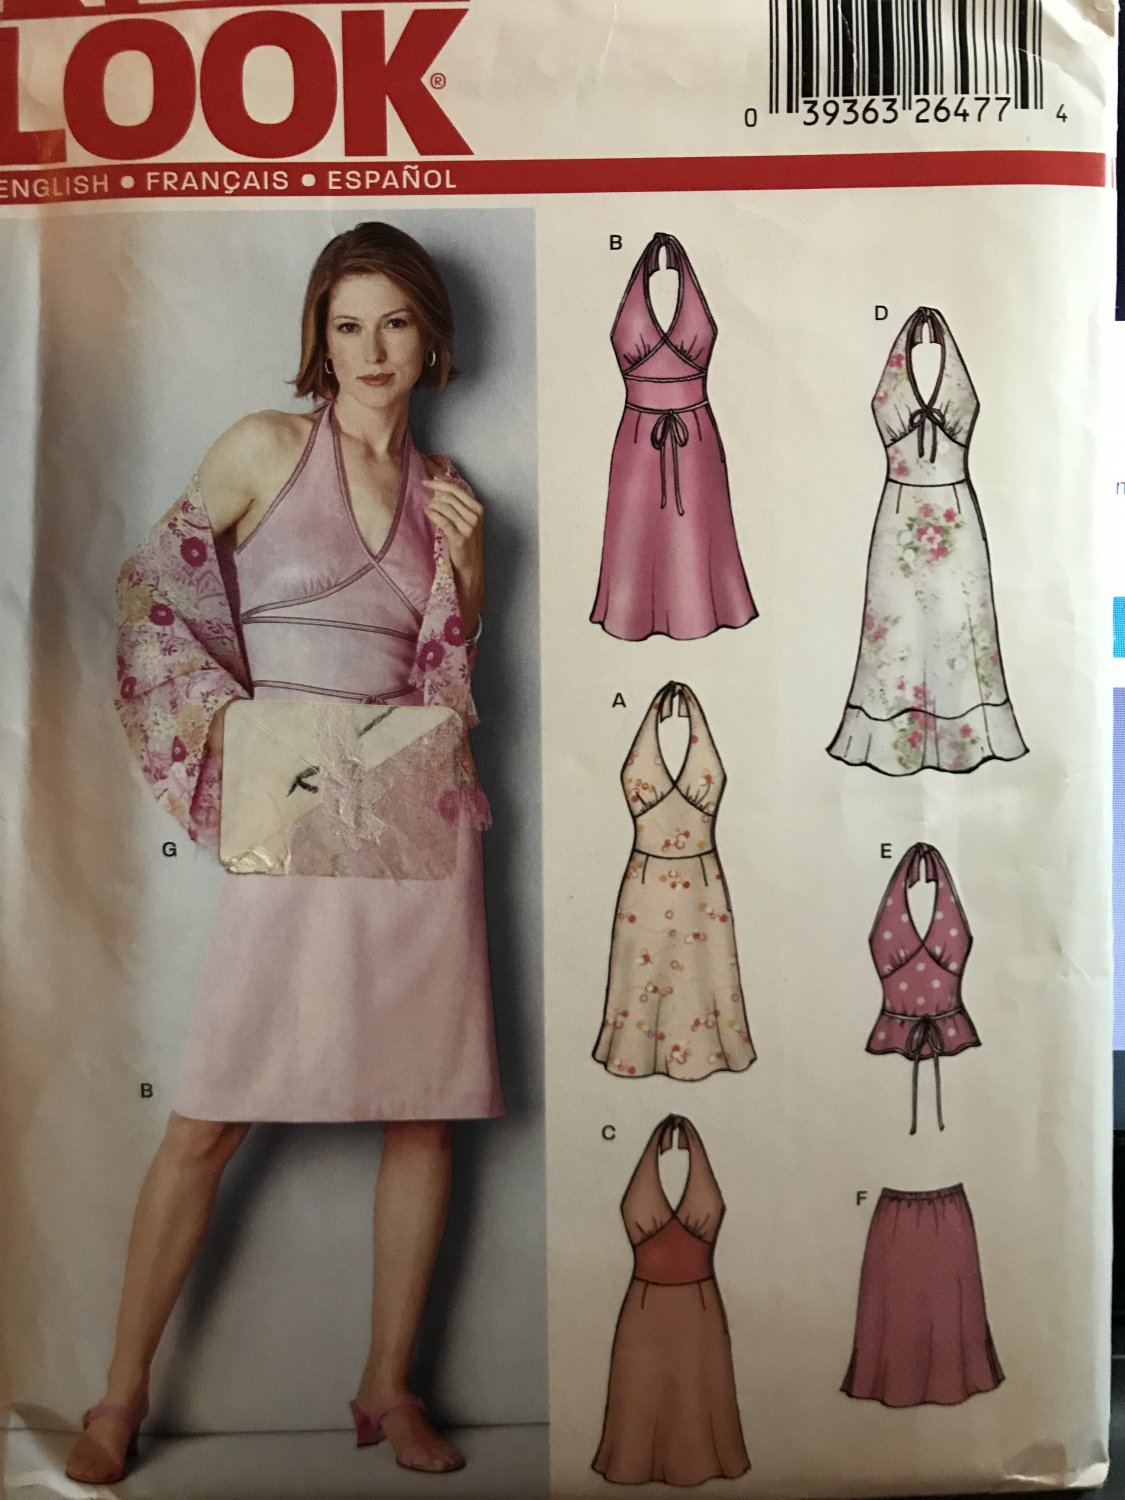 New Look 6242 Halter dress, top skirt size 6-16 sewing pattern